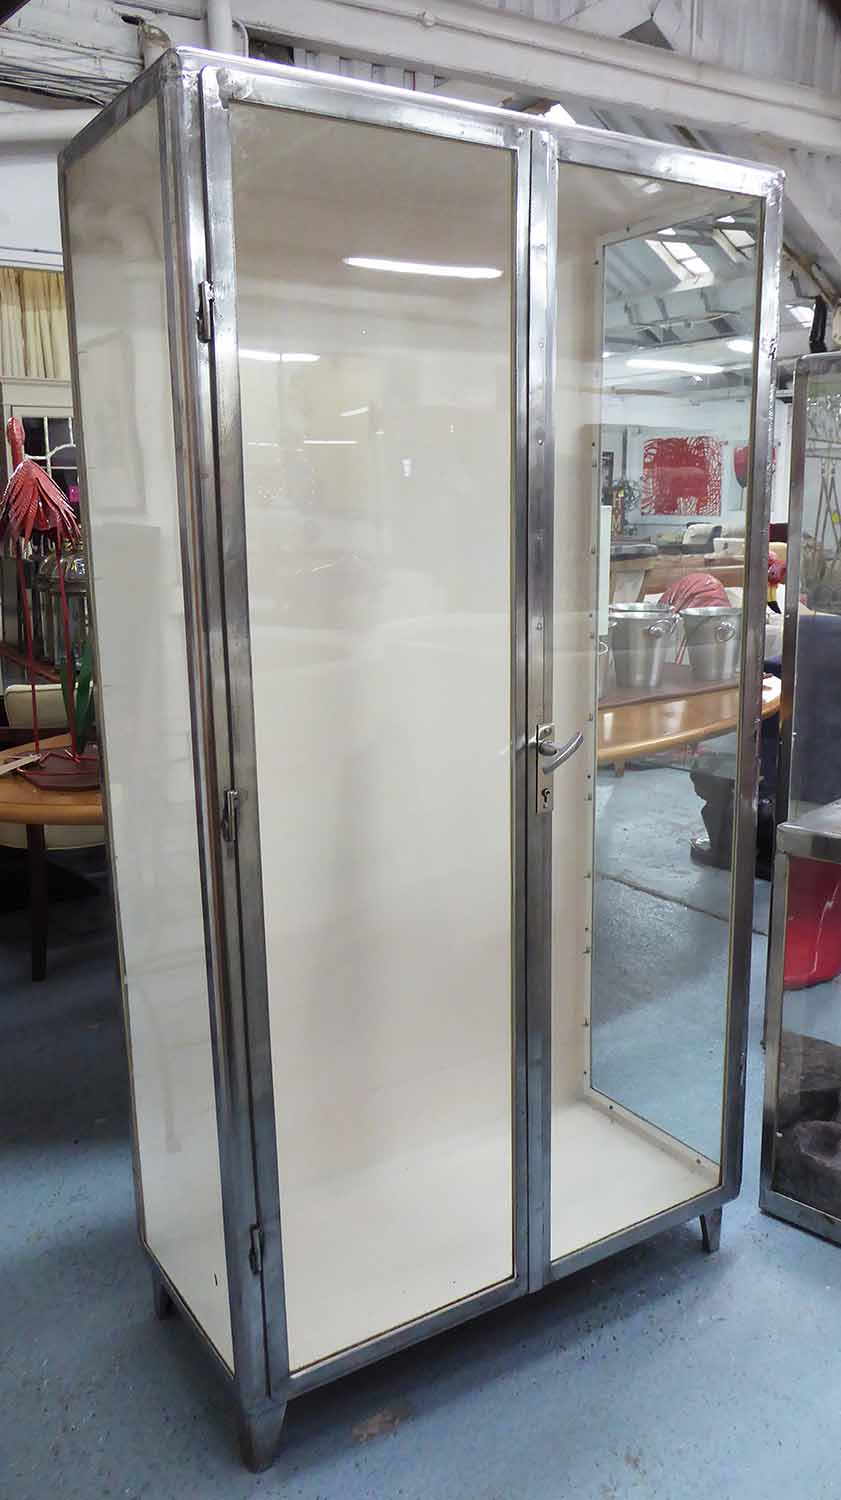 Lot 43 - DISPLAY CABINET, industrial polished metal with glass shelves, 95cm x 46cm x 178cm H.